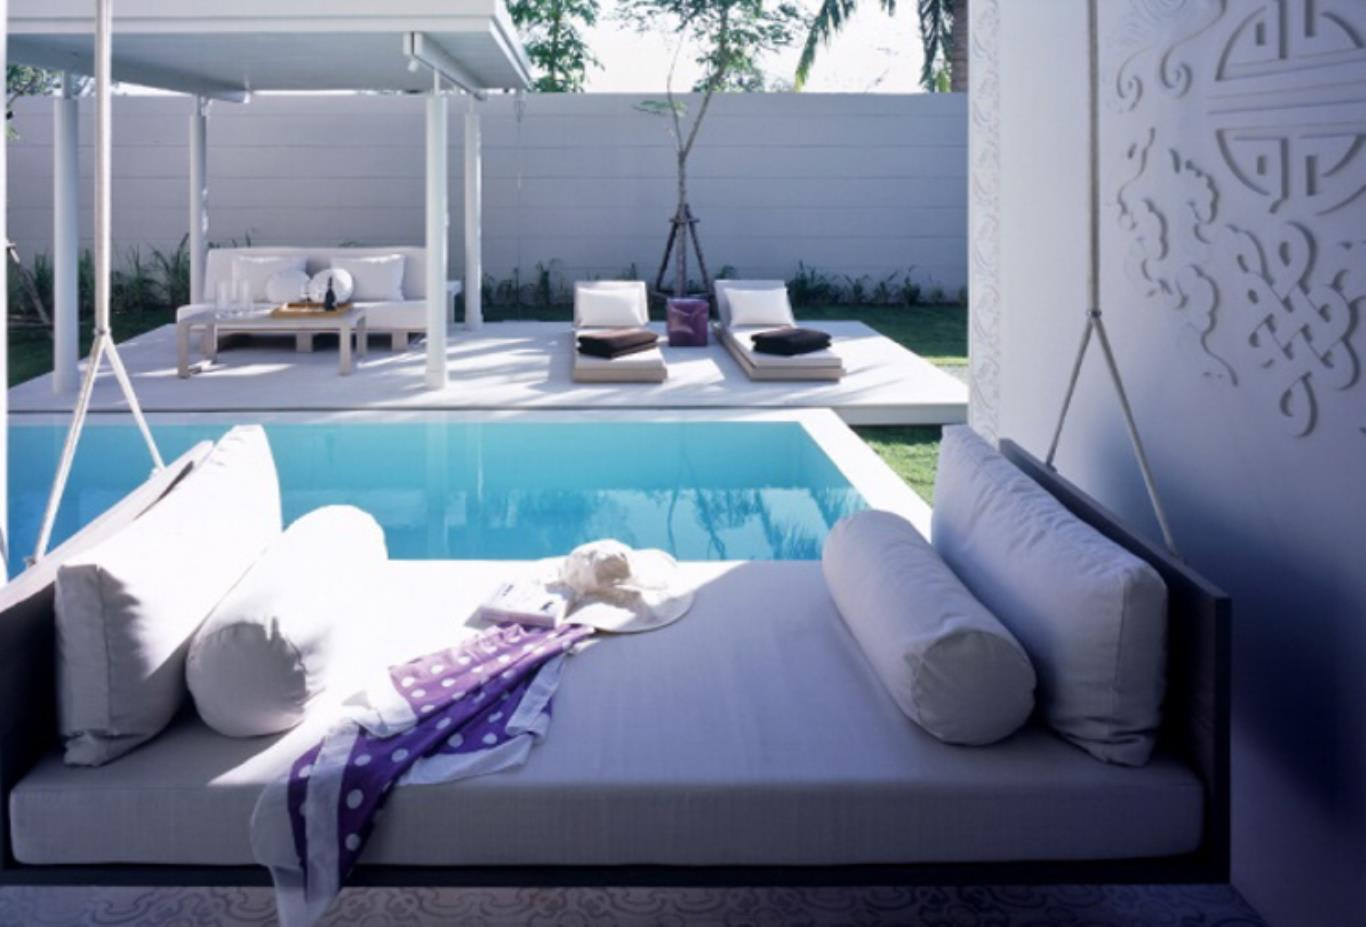 One bedroom duplex pool villa suite daybed